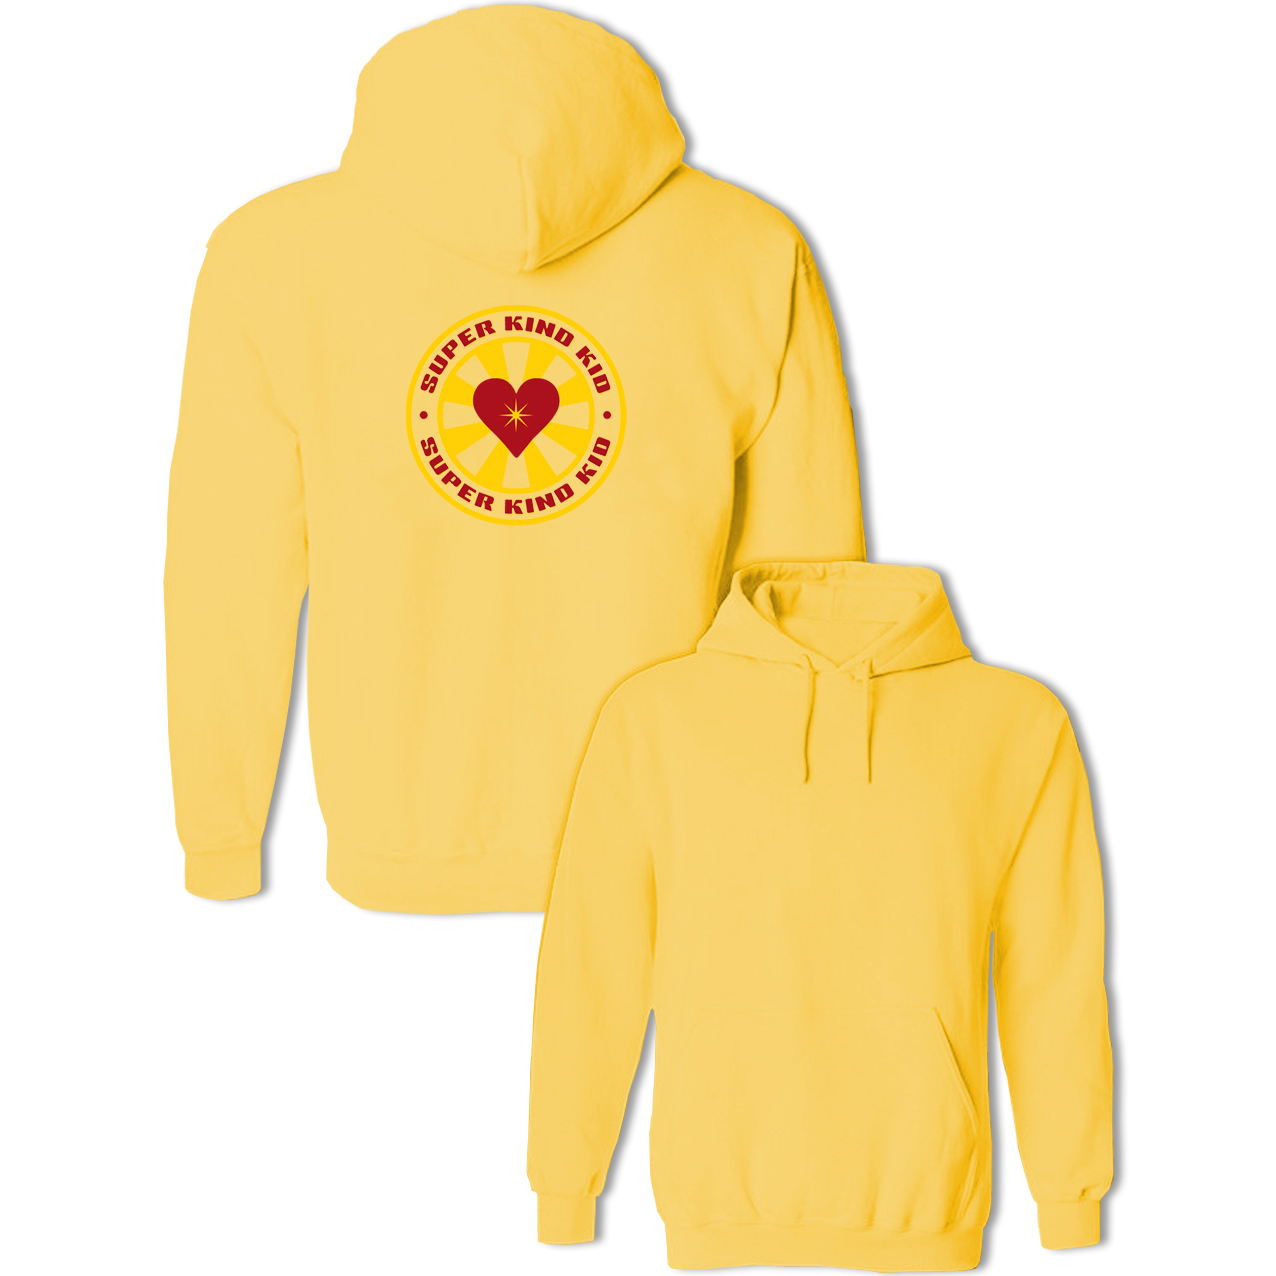 Super Kind Kid Funny Heart Print Fashion Sweatshirt Women Men Cotton Casual Pullovers Multi Color Hoodie For Girl Boy Brand Tops